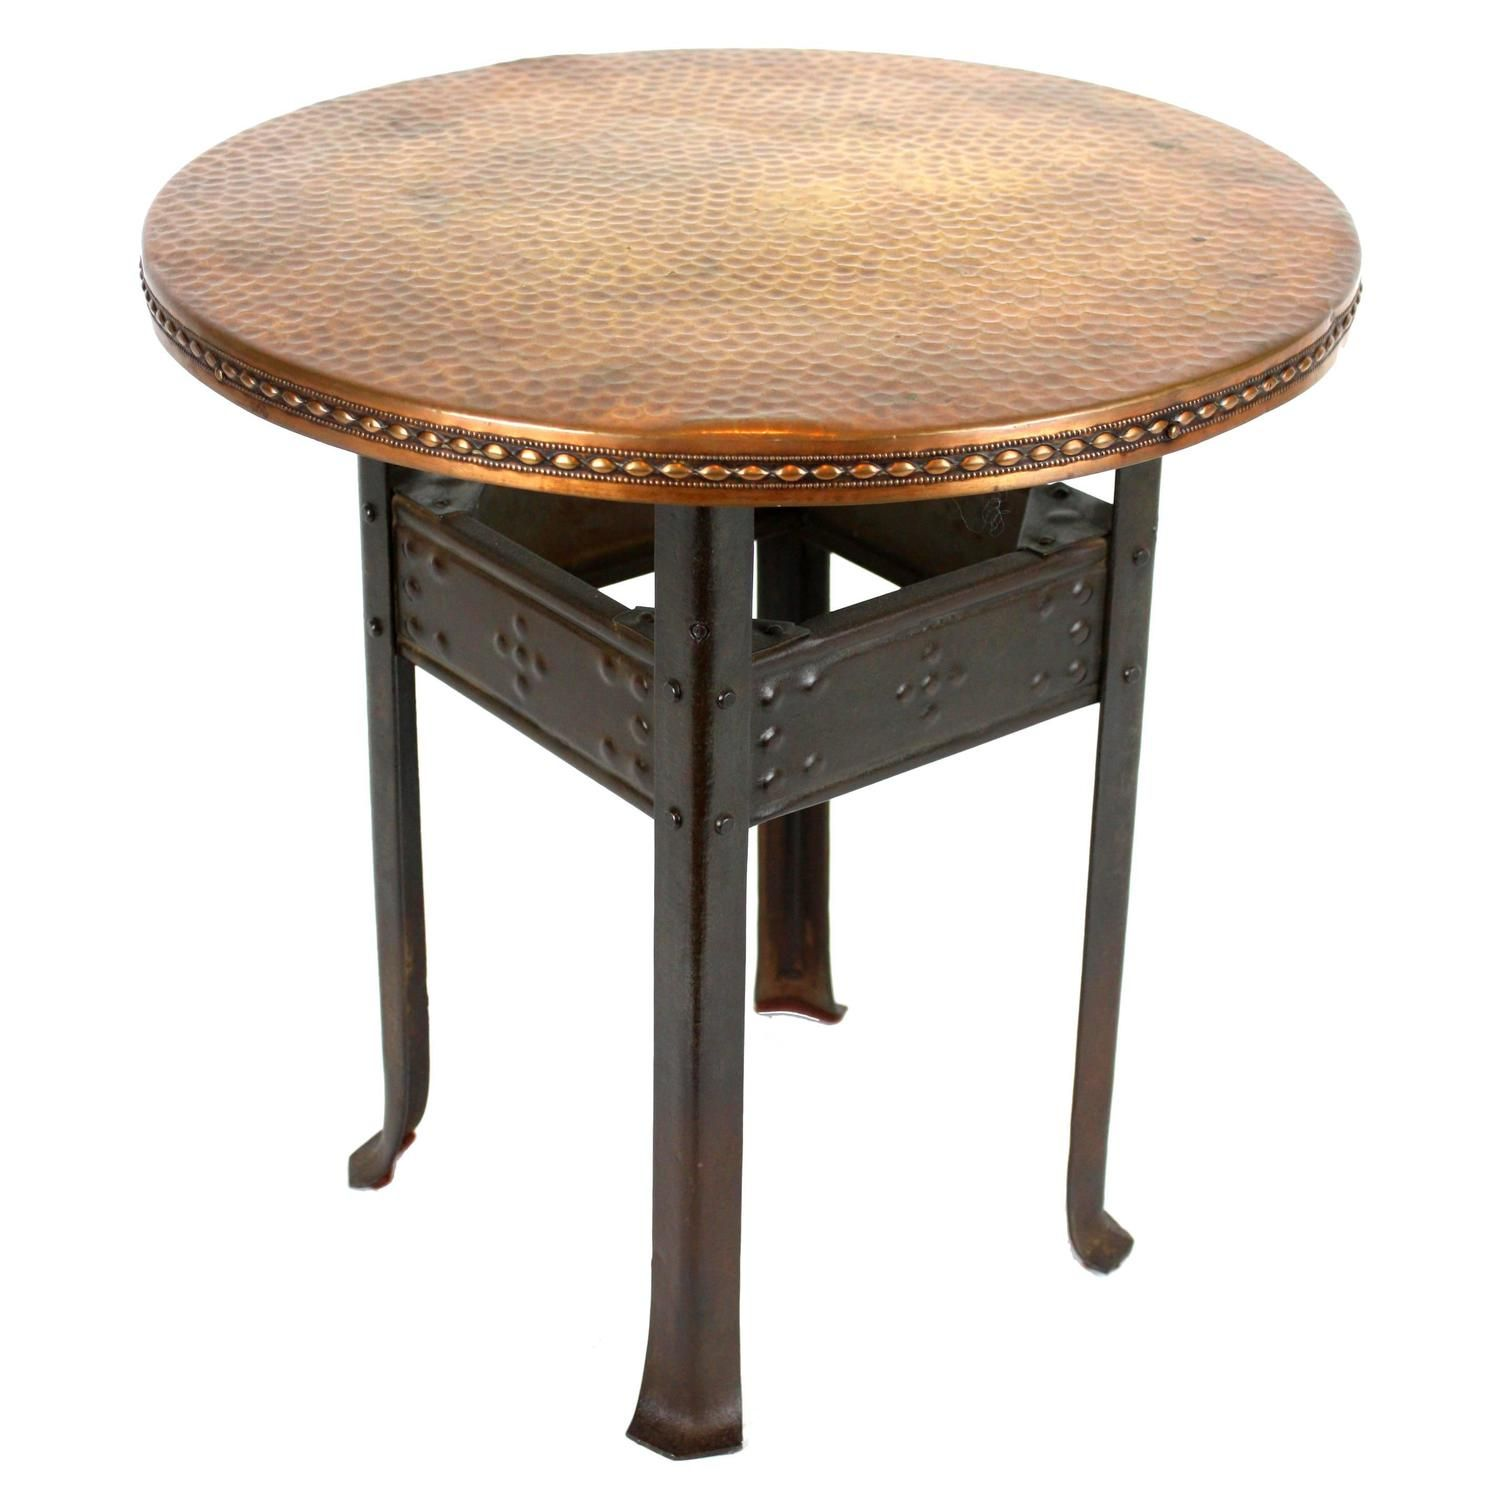 Round Hammered Copper Coffee Table Collection Full Size Of End Tables Coffee Table Excep In 2020 Copper Coffee Table Round Copper Coffee Table White Round Coffee Table